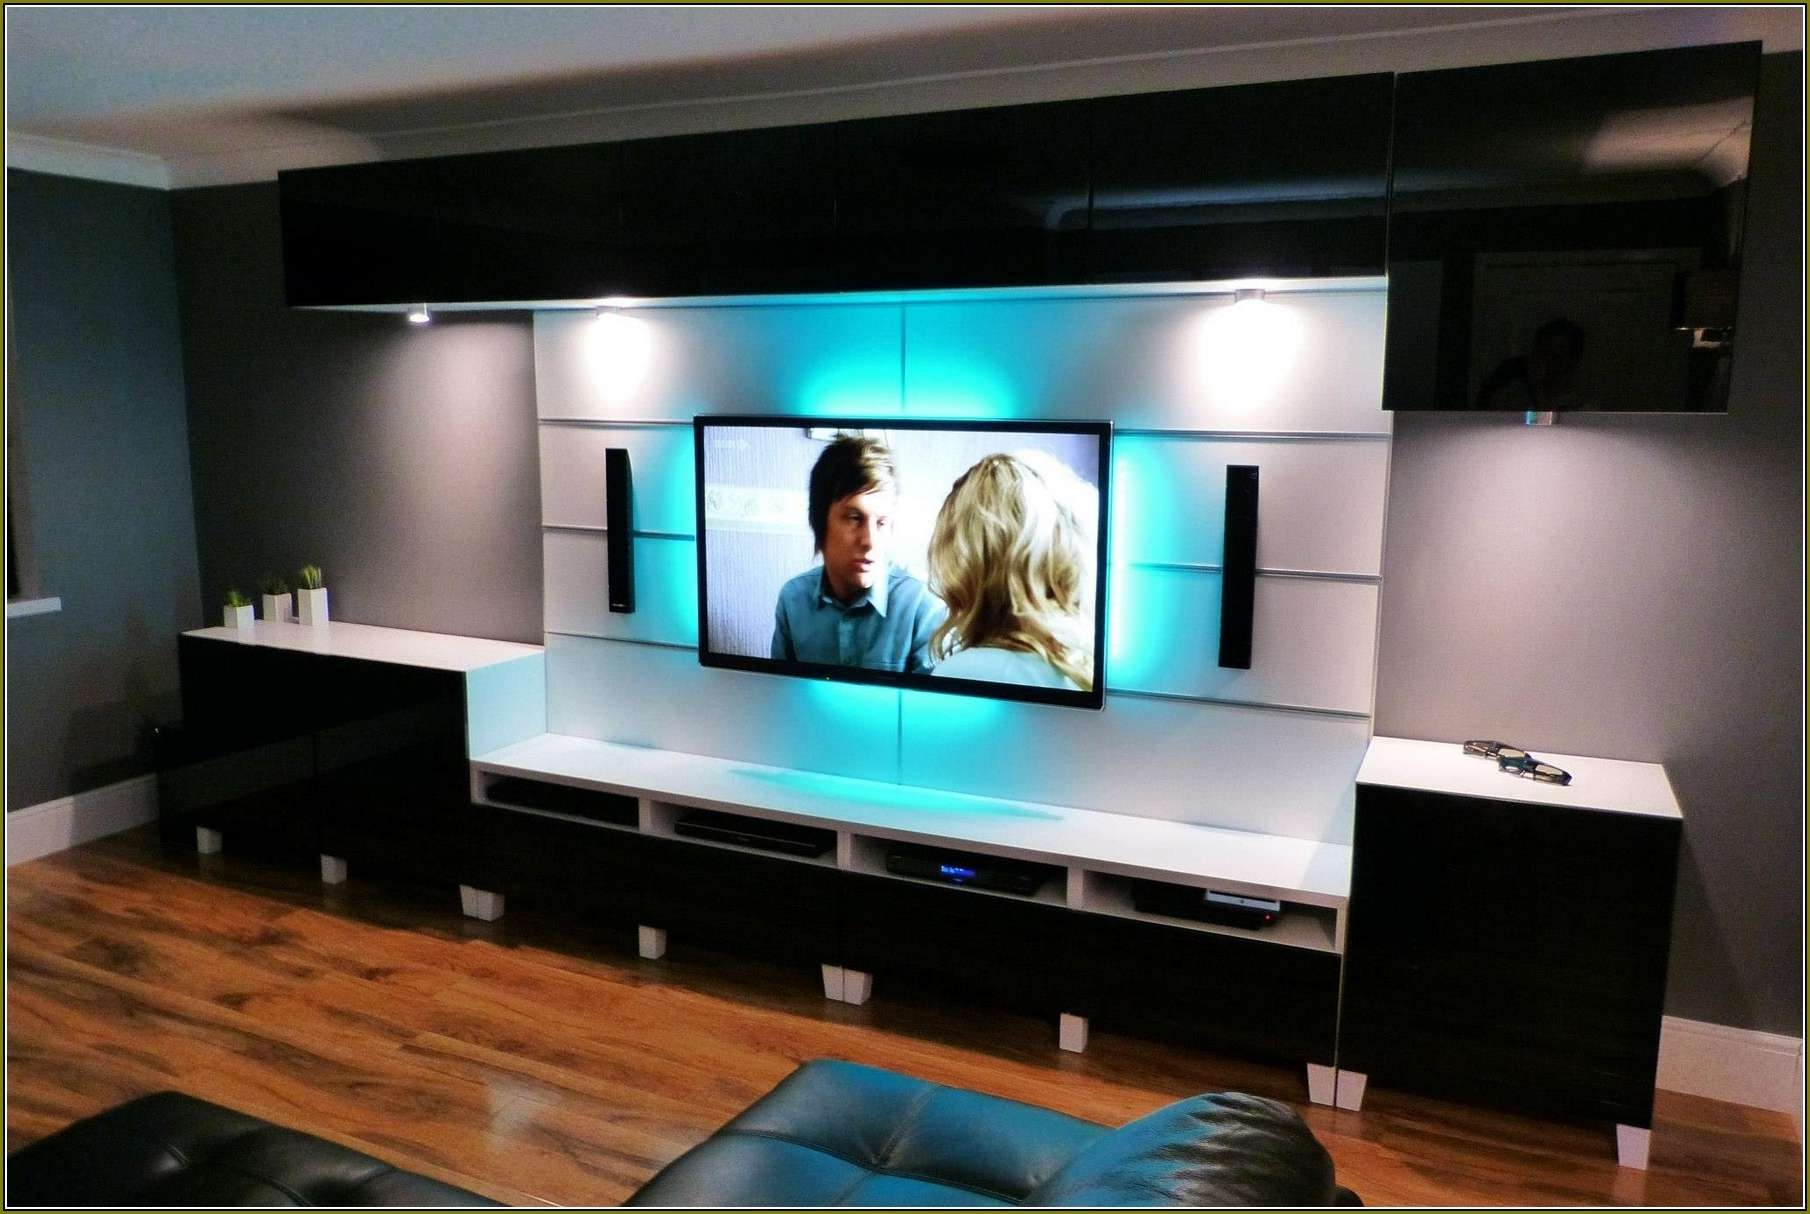 White Solid Wood Wall Mount Tv Stand With Blue Led Light Of With Regard To Led Tv Cabinets (View 14 of 20)